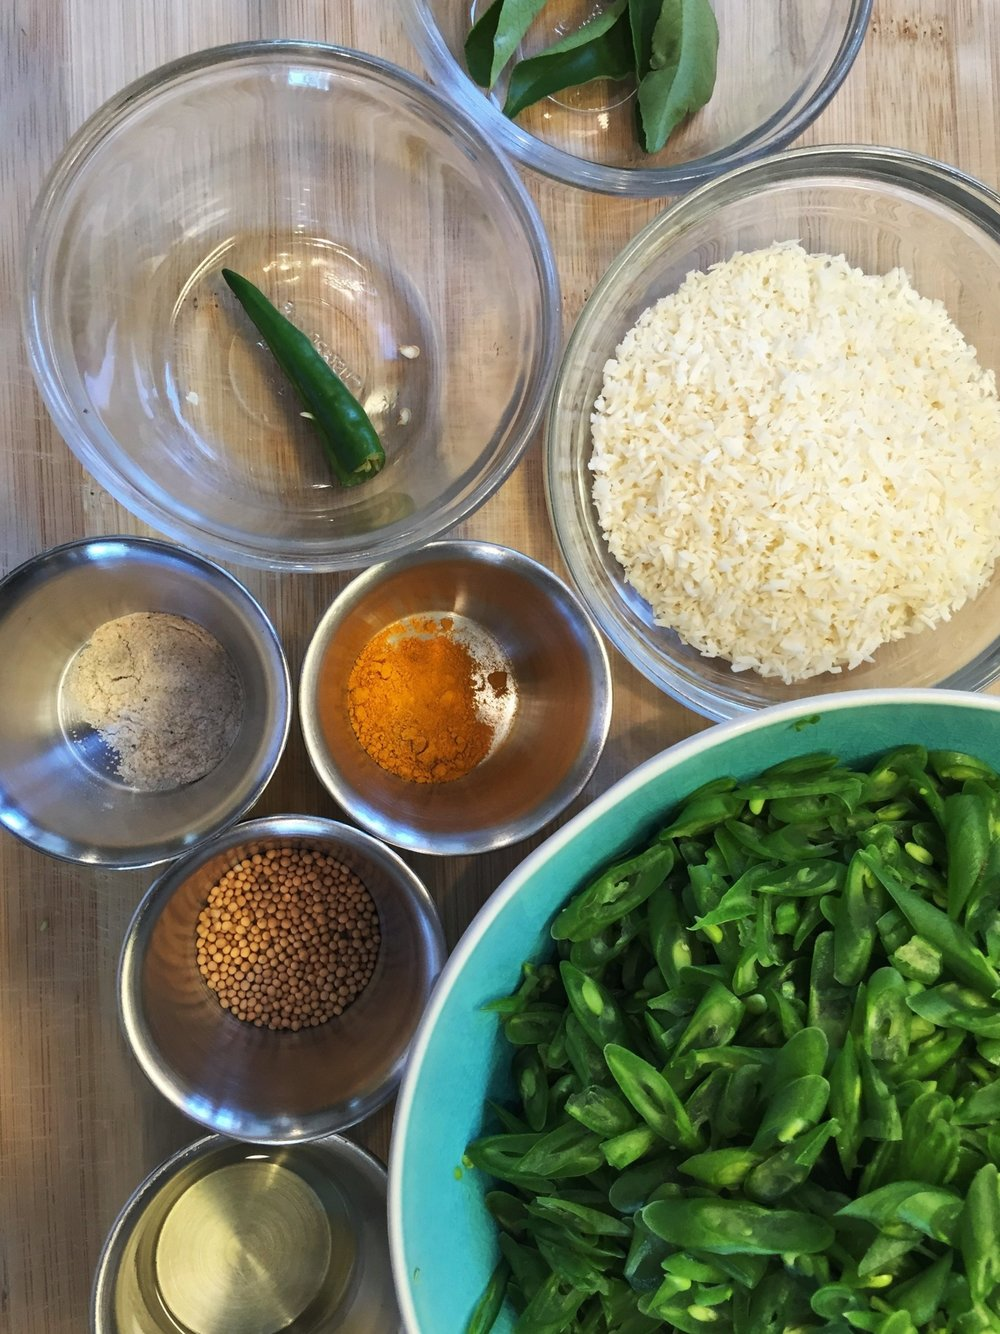 Prepped ingredients, at the ready for South Indian Vegetable Curry. This is the kind of dish where you'll find it helpful to have everything ready before you start to cook.